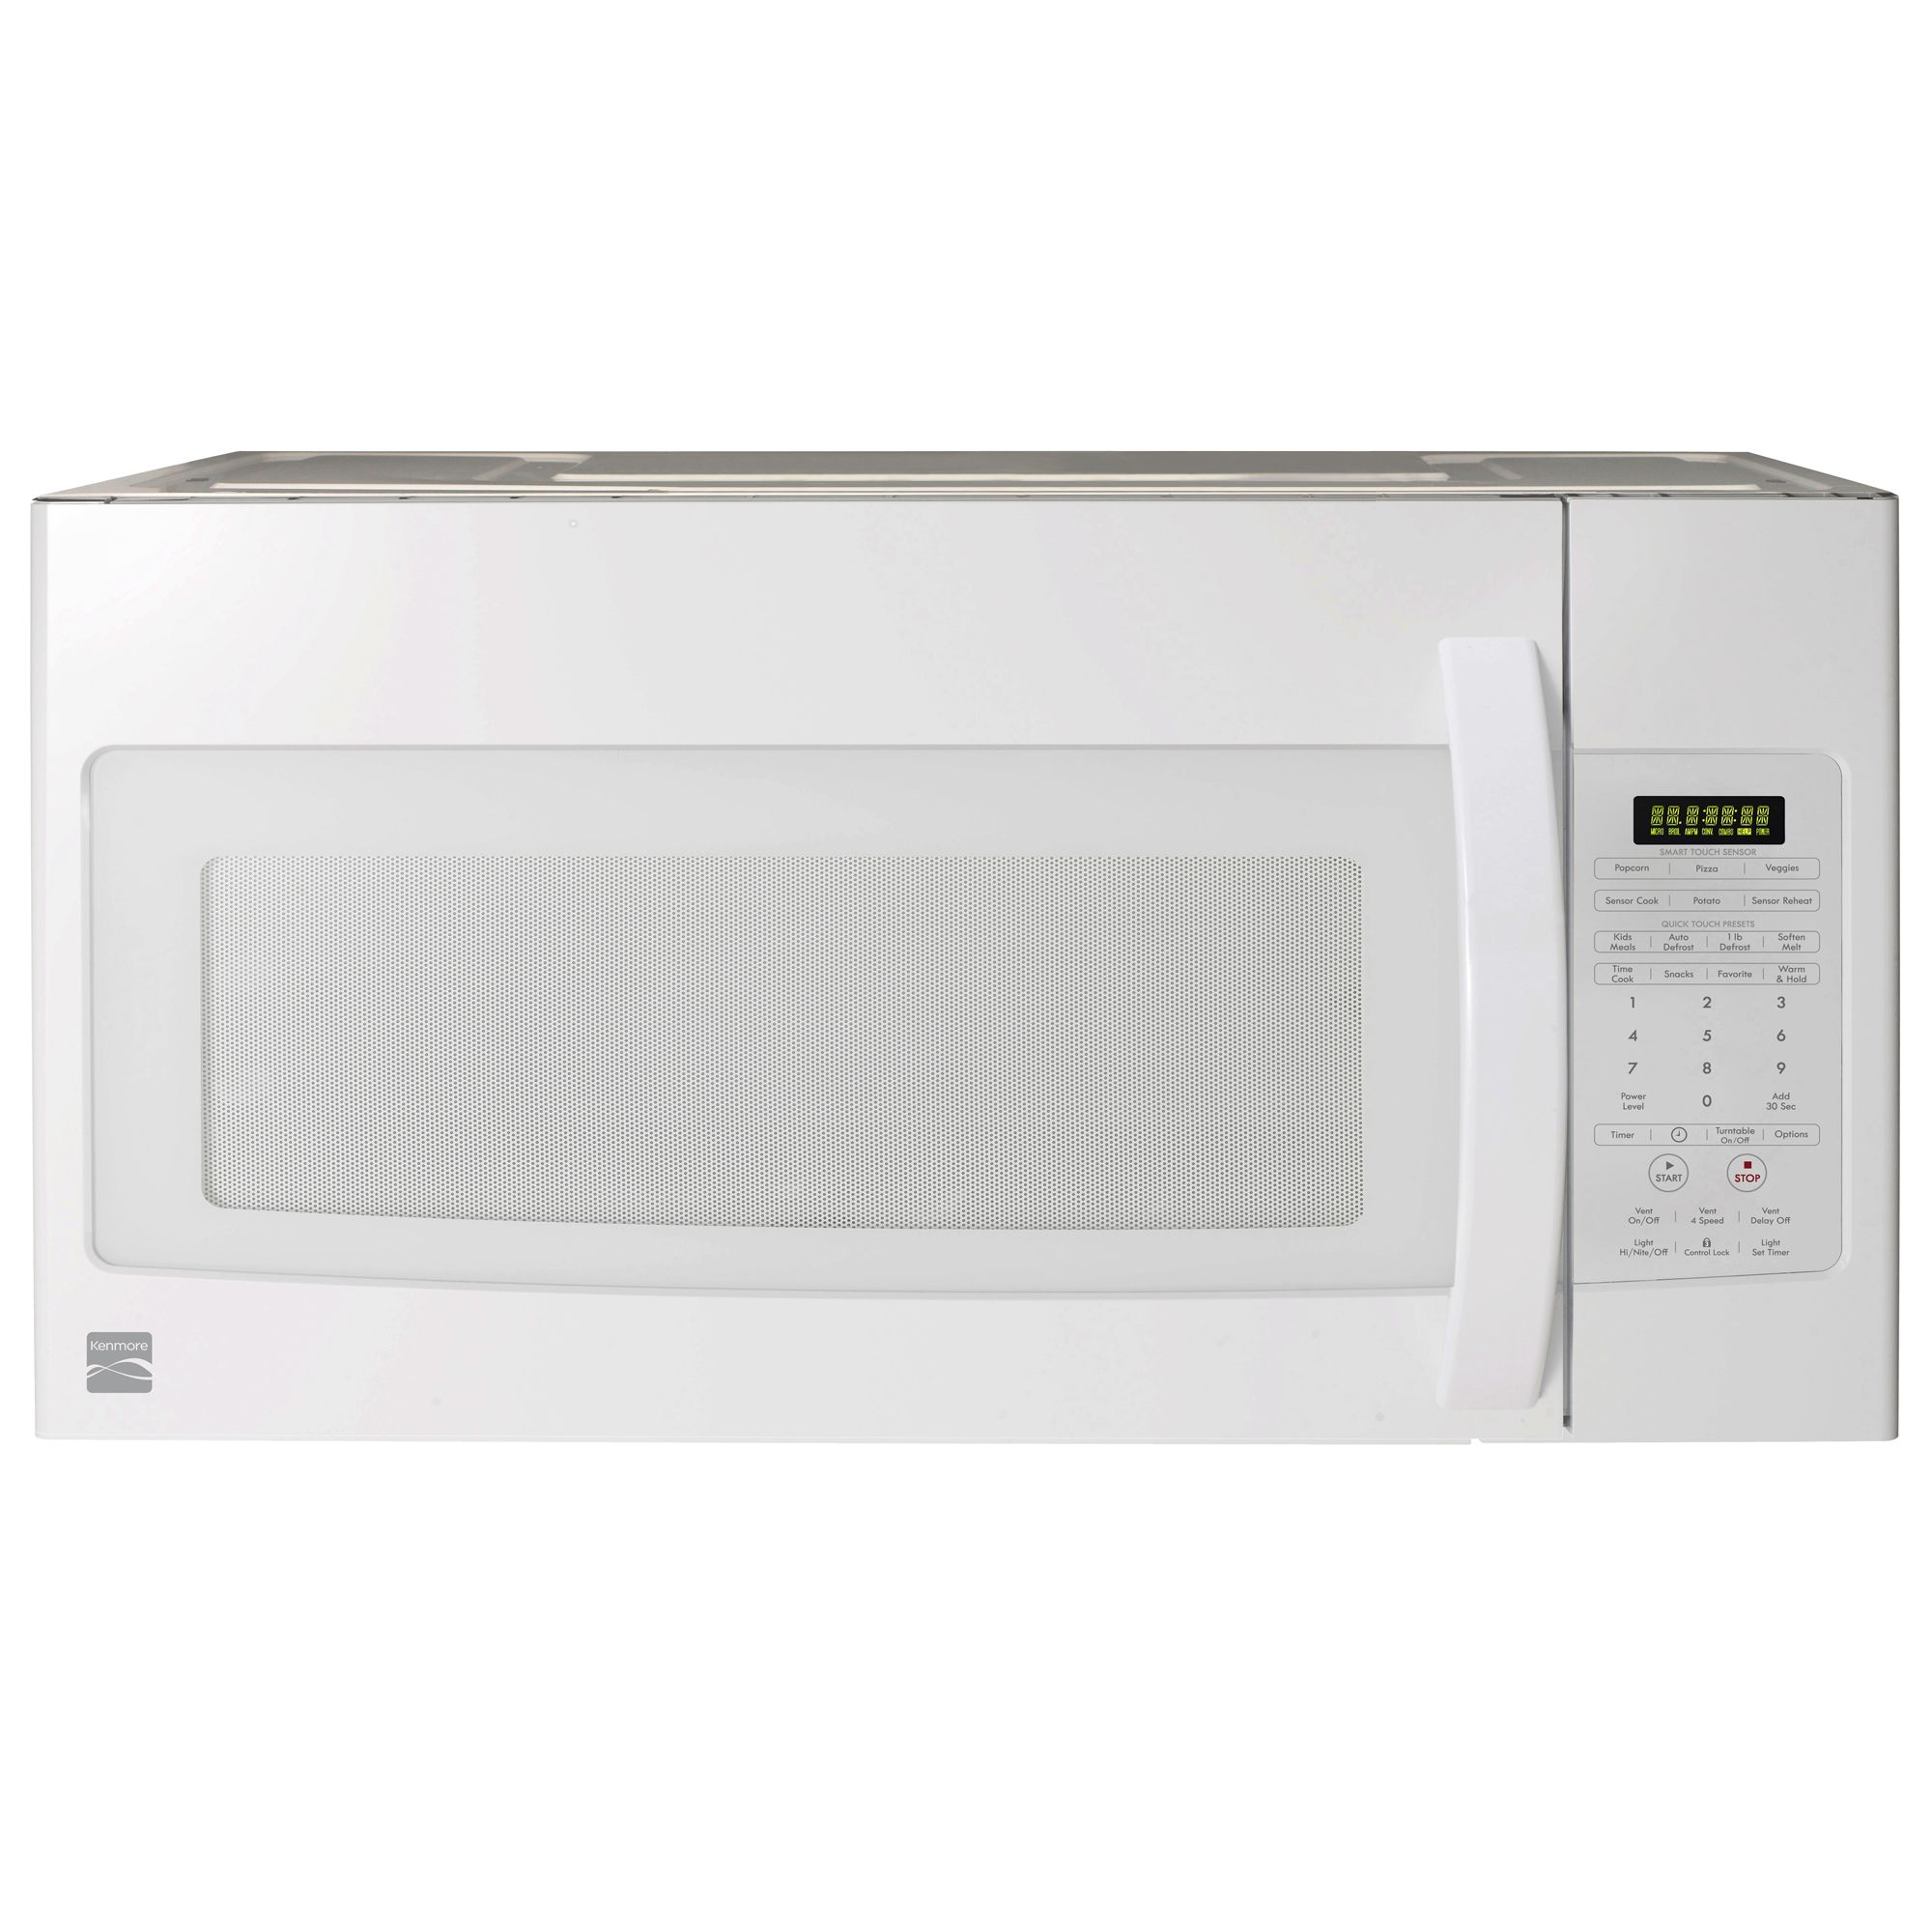 kenmore 85052 1 9 cu ft over the range microwave oven